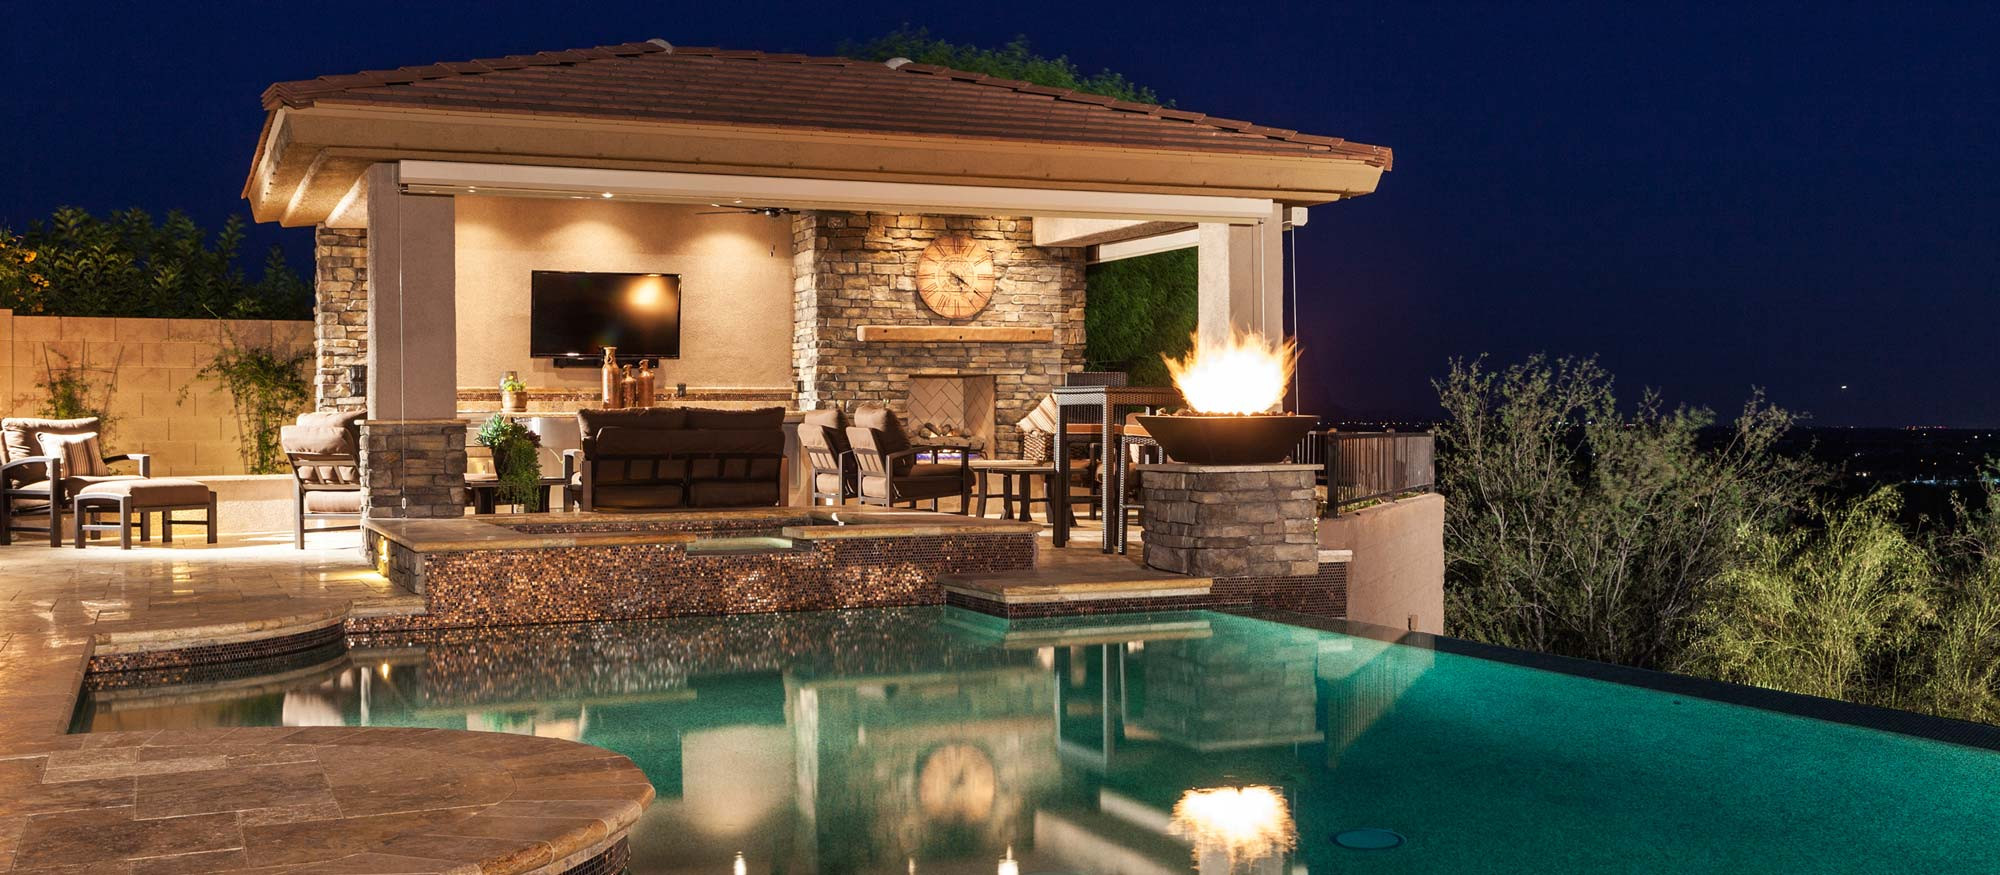 Custom Pool Installations | NLO Landscapes and Landscape ... on Outdoor Kitchen With Pool Ideas id=13921